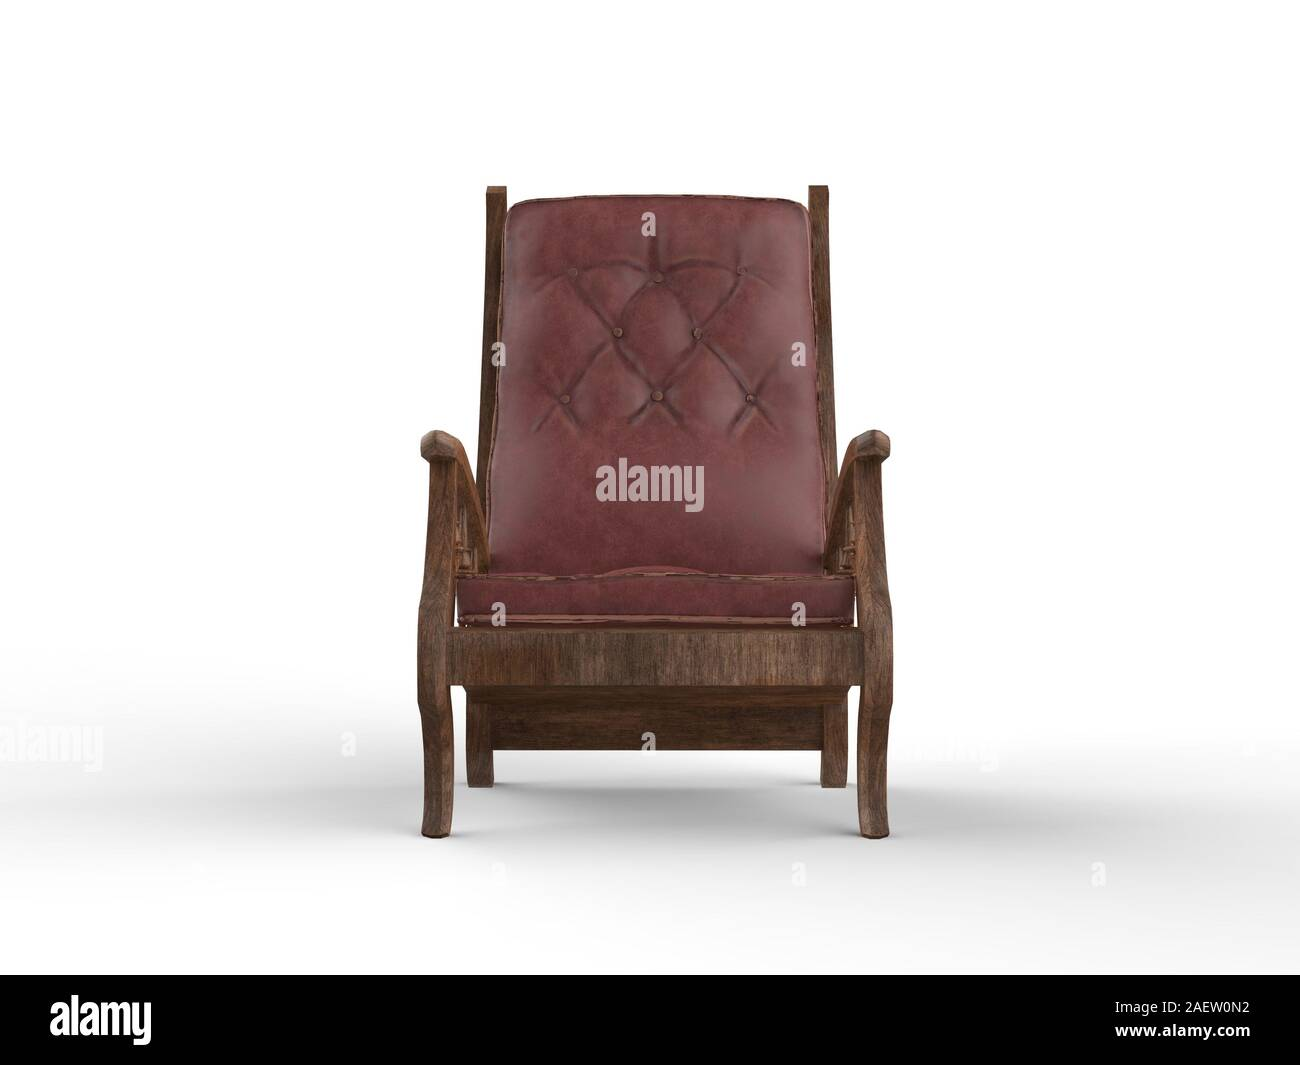 Page 5 Royal Chair High Resolution Stock Photography And Images Alamy